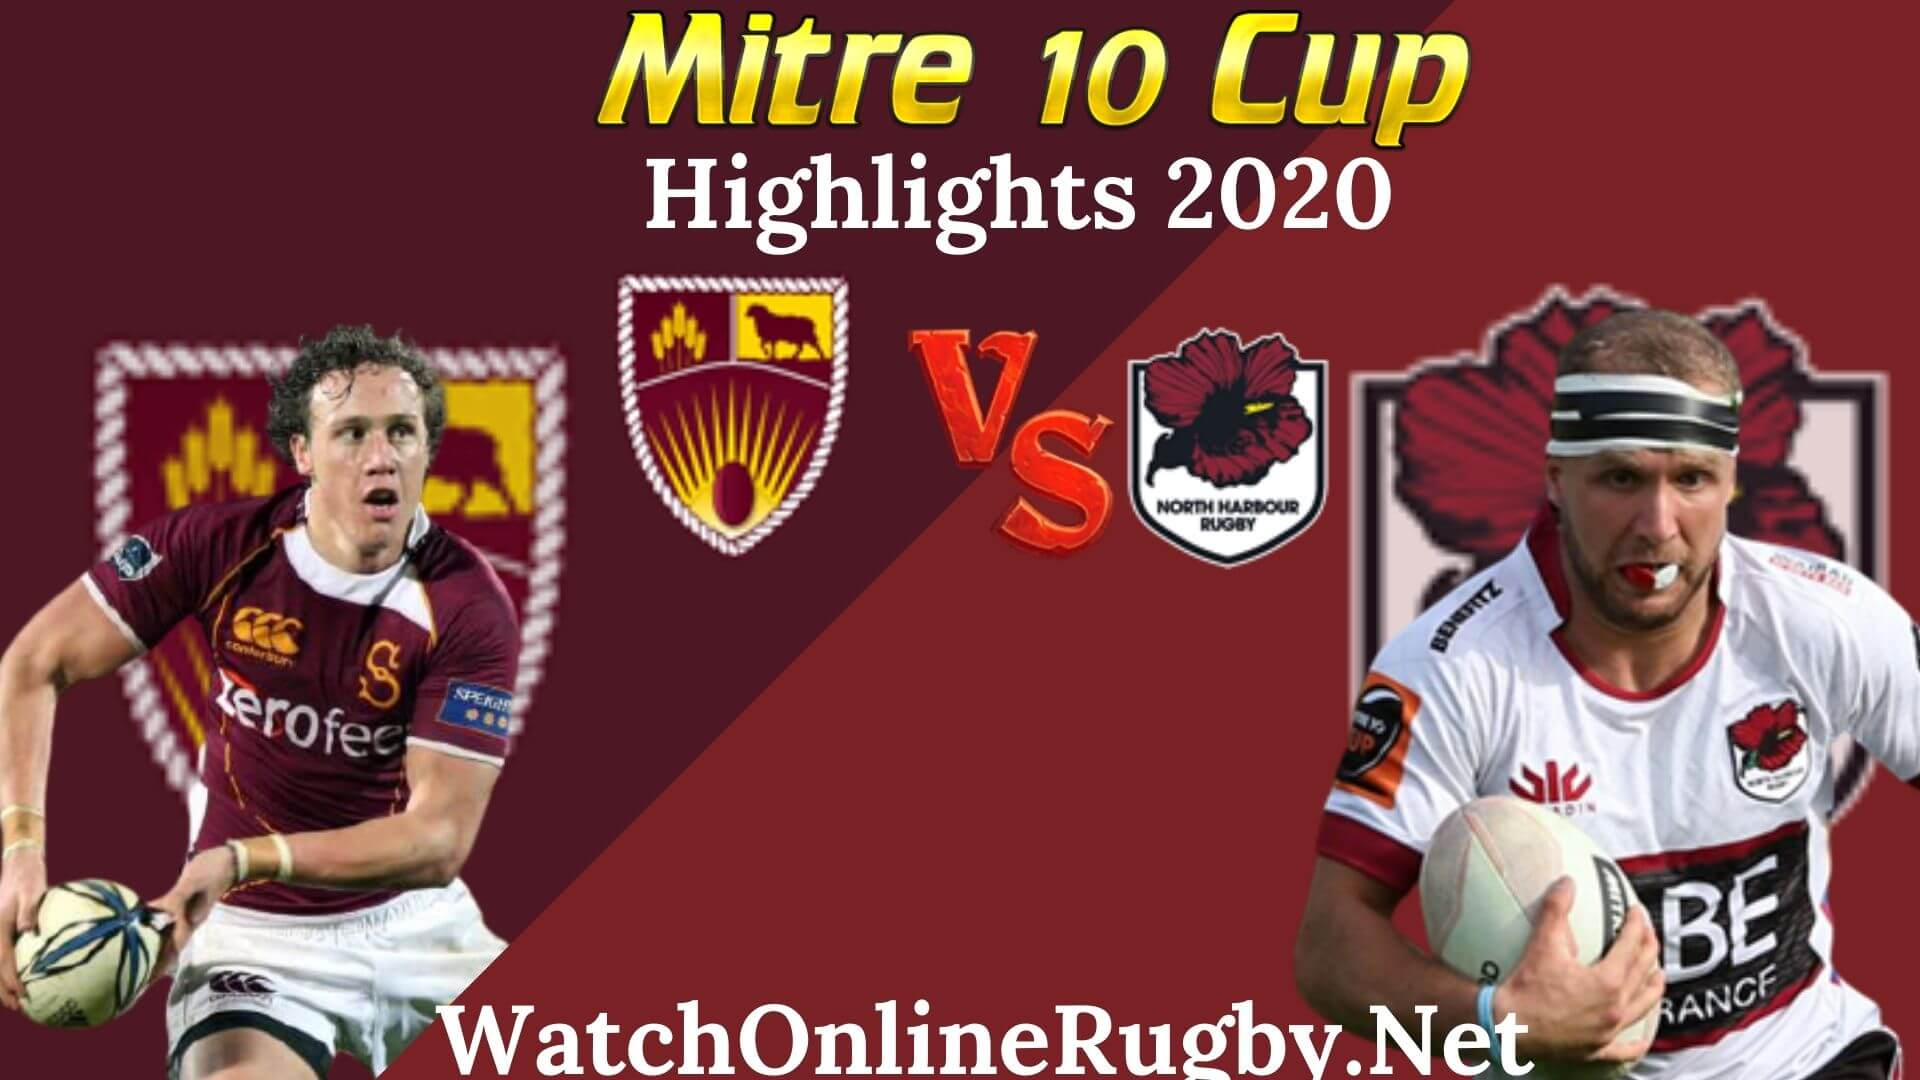 Southland vs North Harbour RD 3 Highlights 2020 M10 Cup